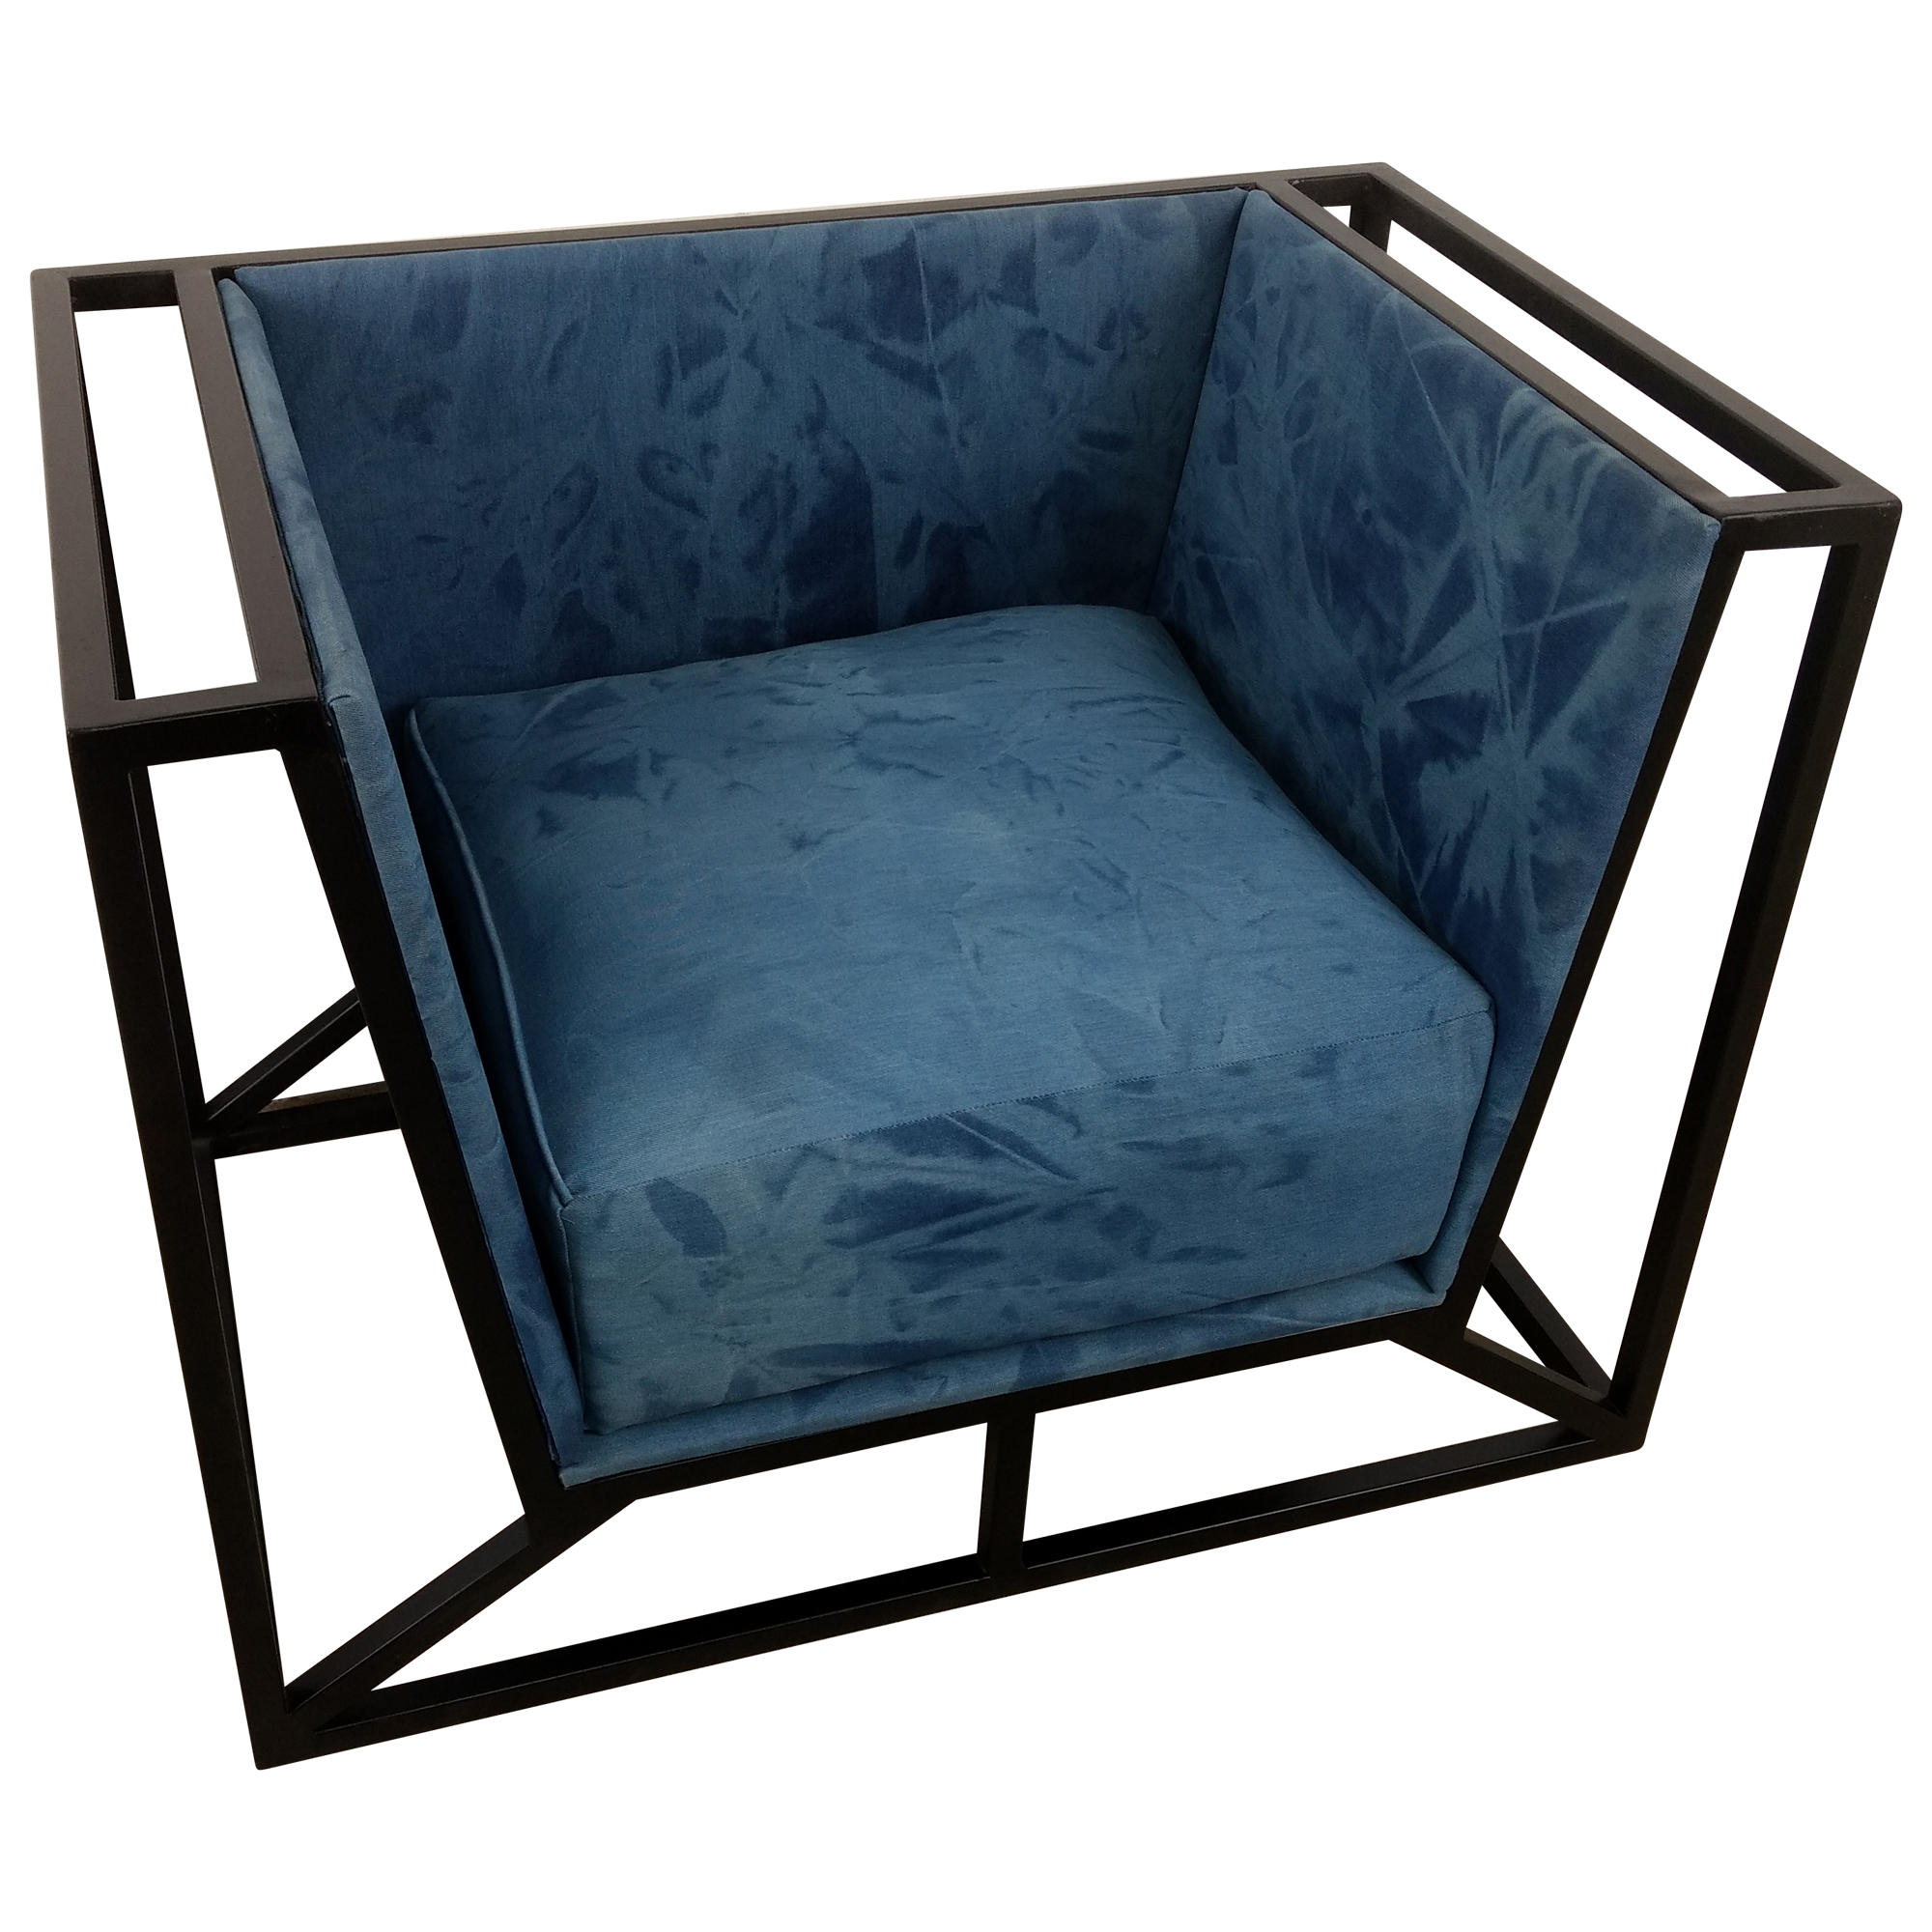 Industrie Sessel Sessel Clubsessel Lounge Relaxsessel Canva Designer Armcair Loft Industrie Jeans